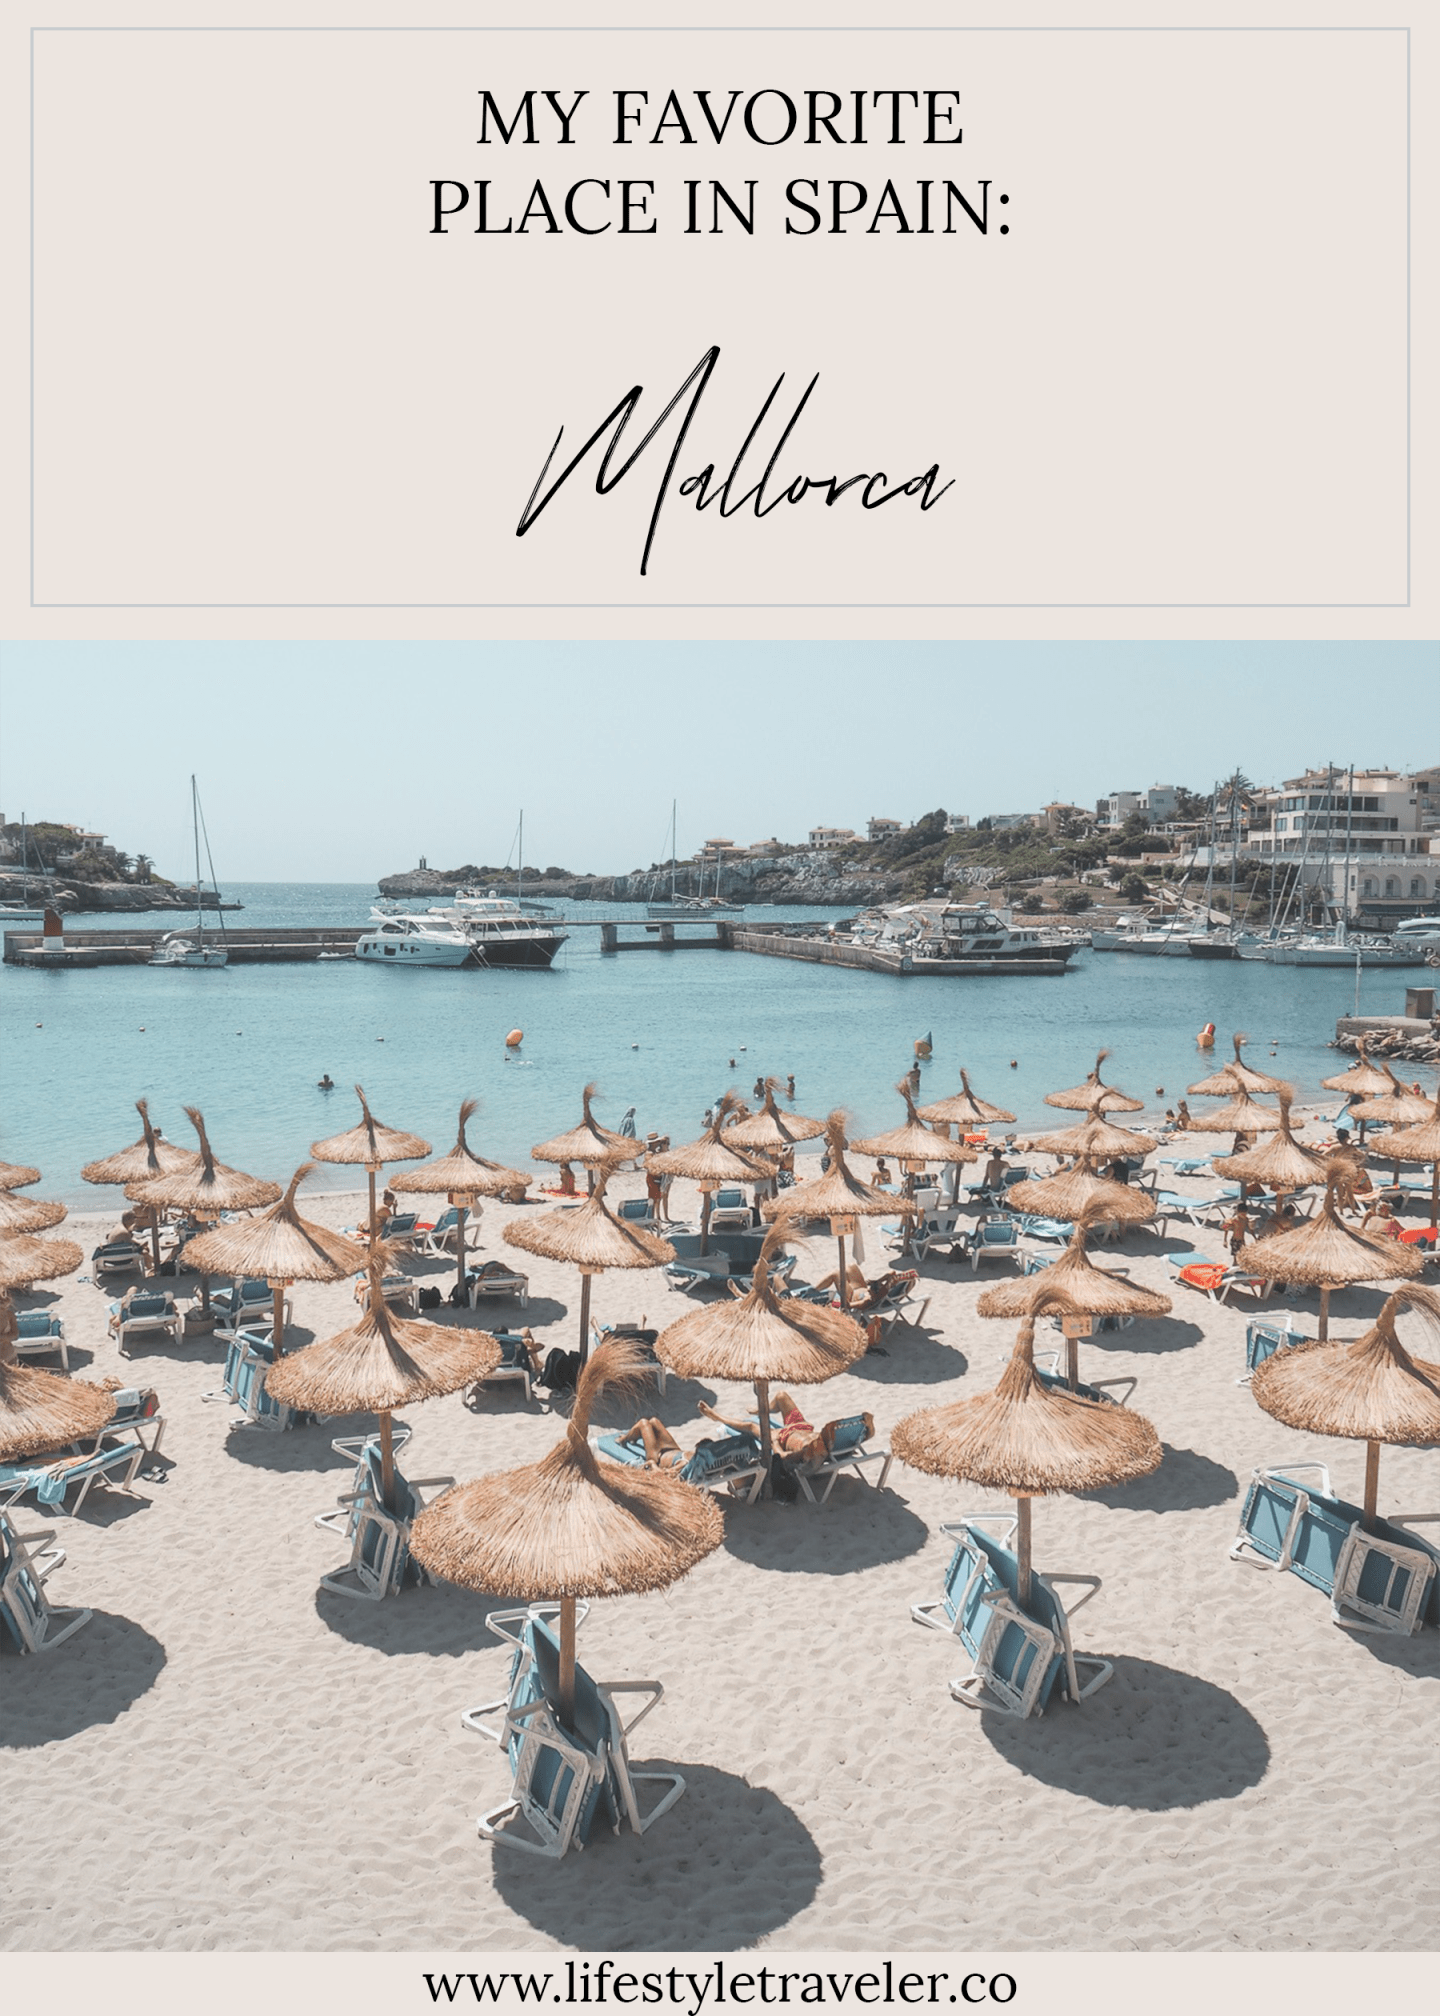 My Favorite Place In Spain Mallorca Lifestyletraveler Co Ig Lifestyletraveler Co Places In Spain Spain Travel Favorite Places